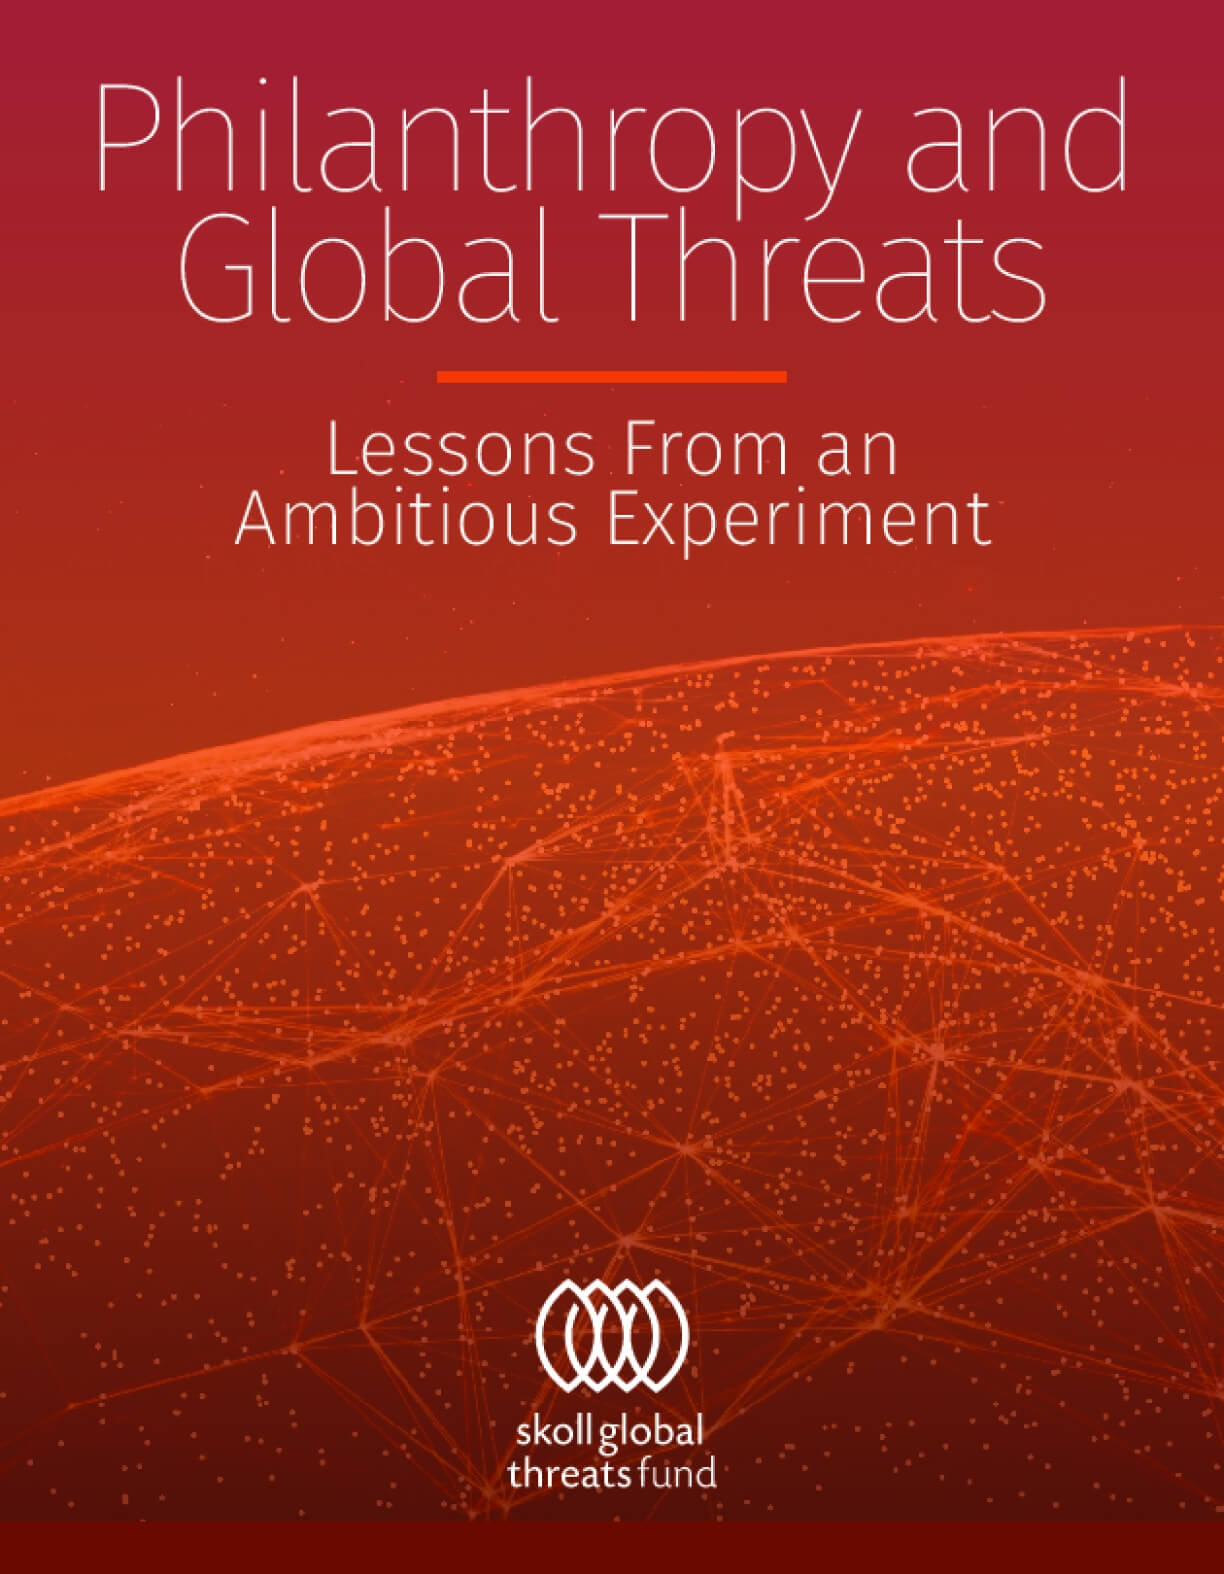 Philanthropy and Global Threats: Lessons From an Ambitious Experiment